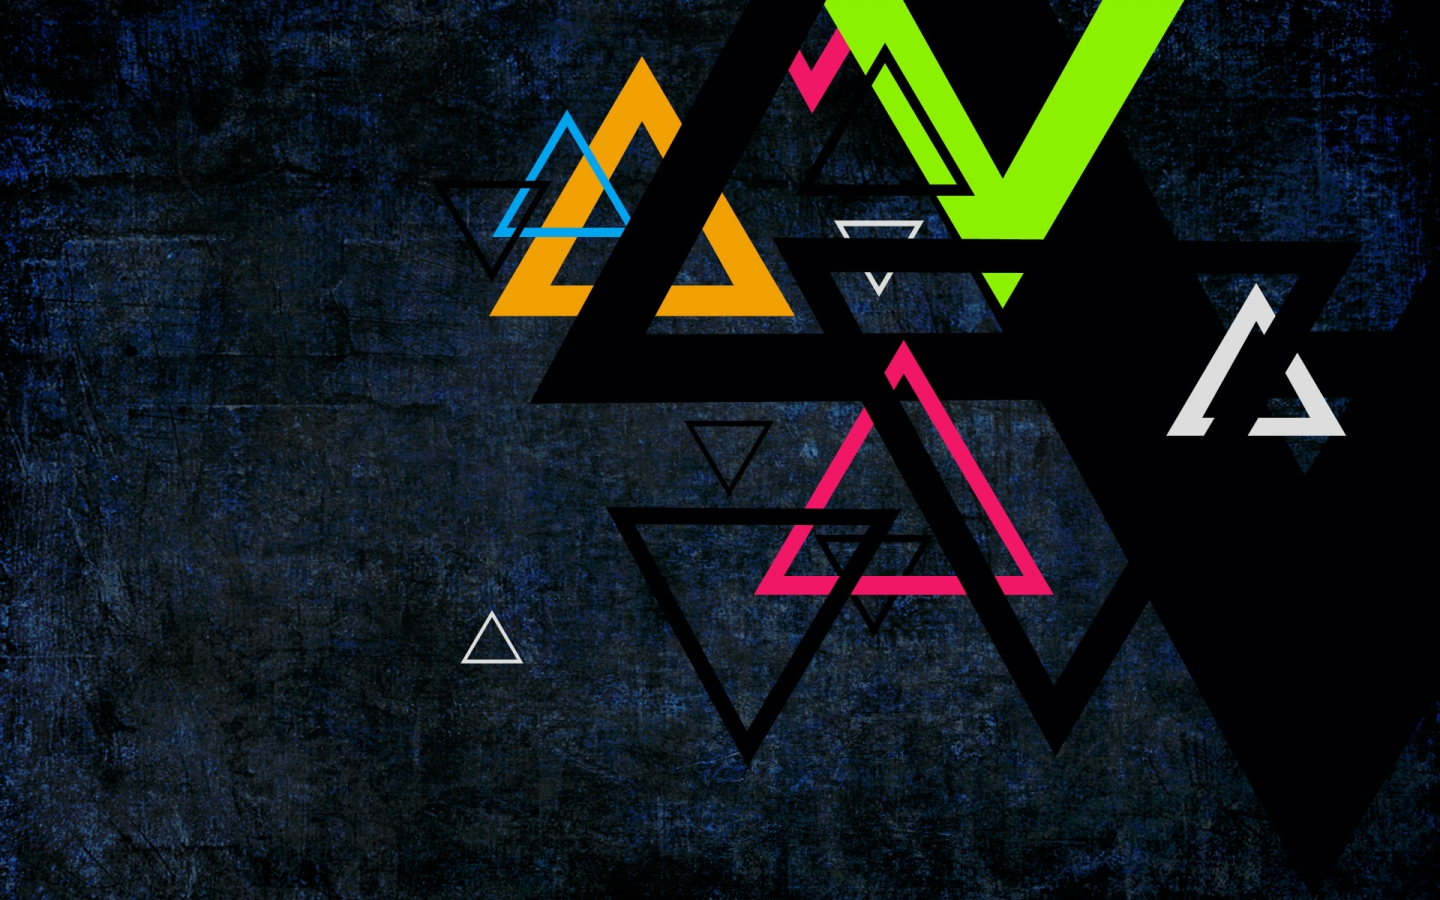 wallpaper_29_the_triangles_by_zpecter.jpg